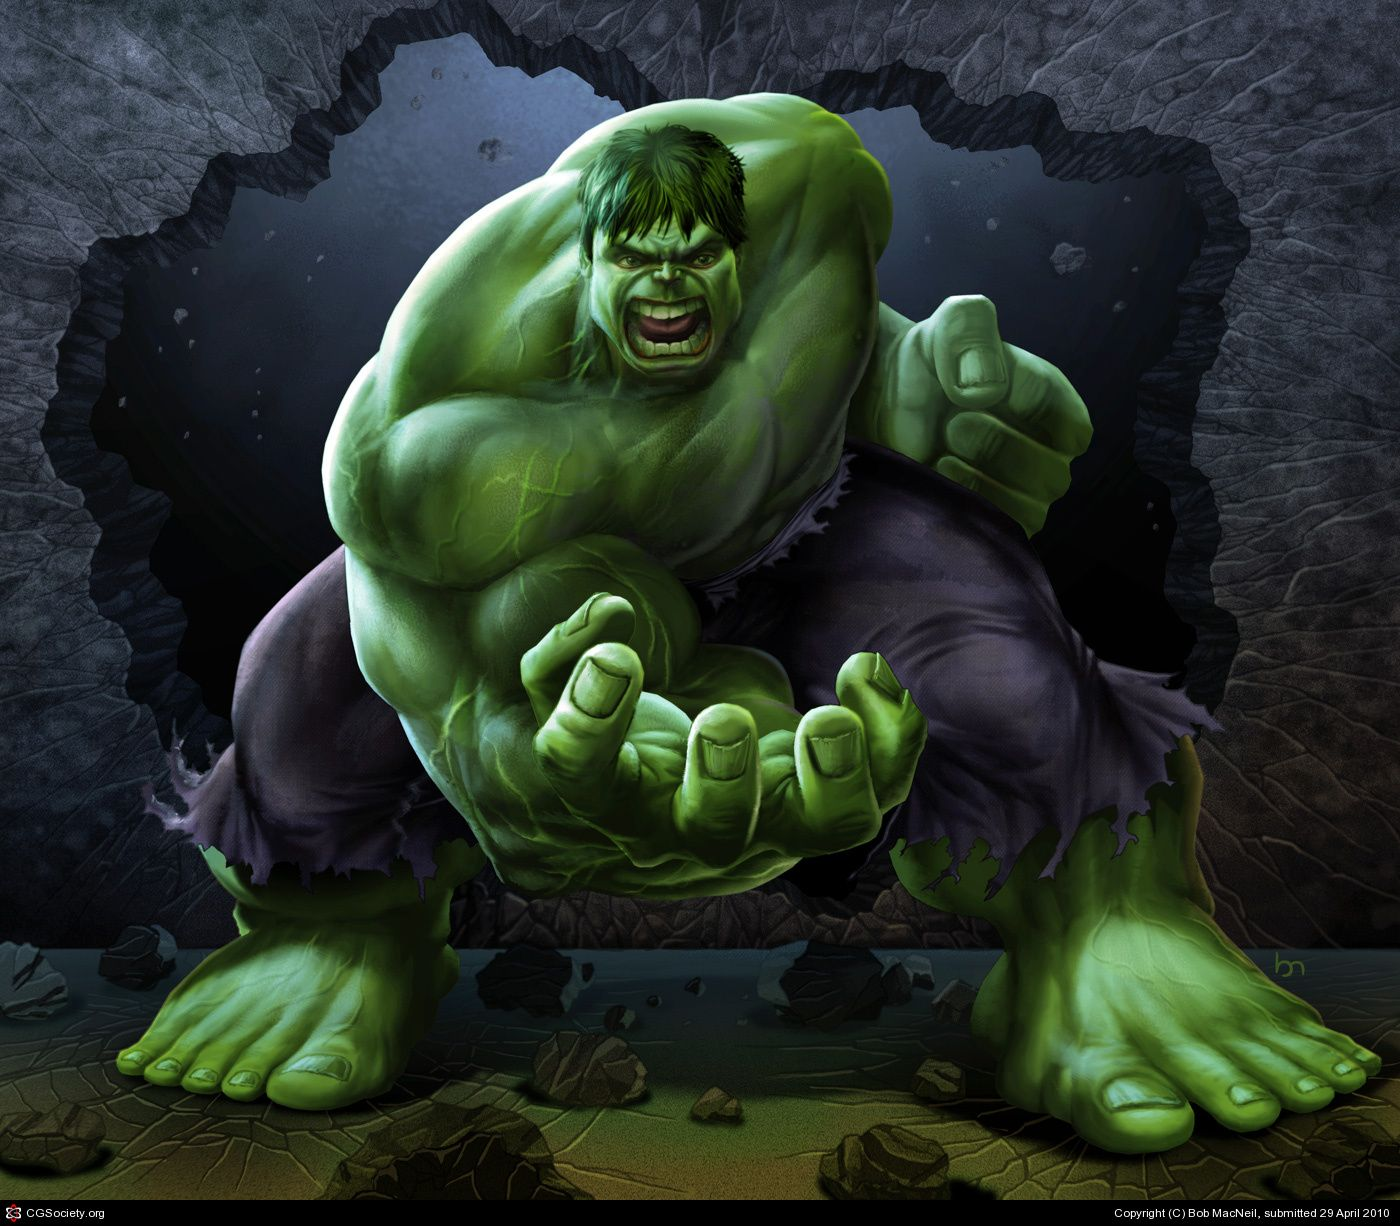 Hulk Marvel HULK Pinterest Hulk marvel, Marvel and